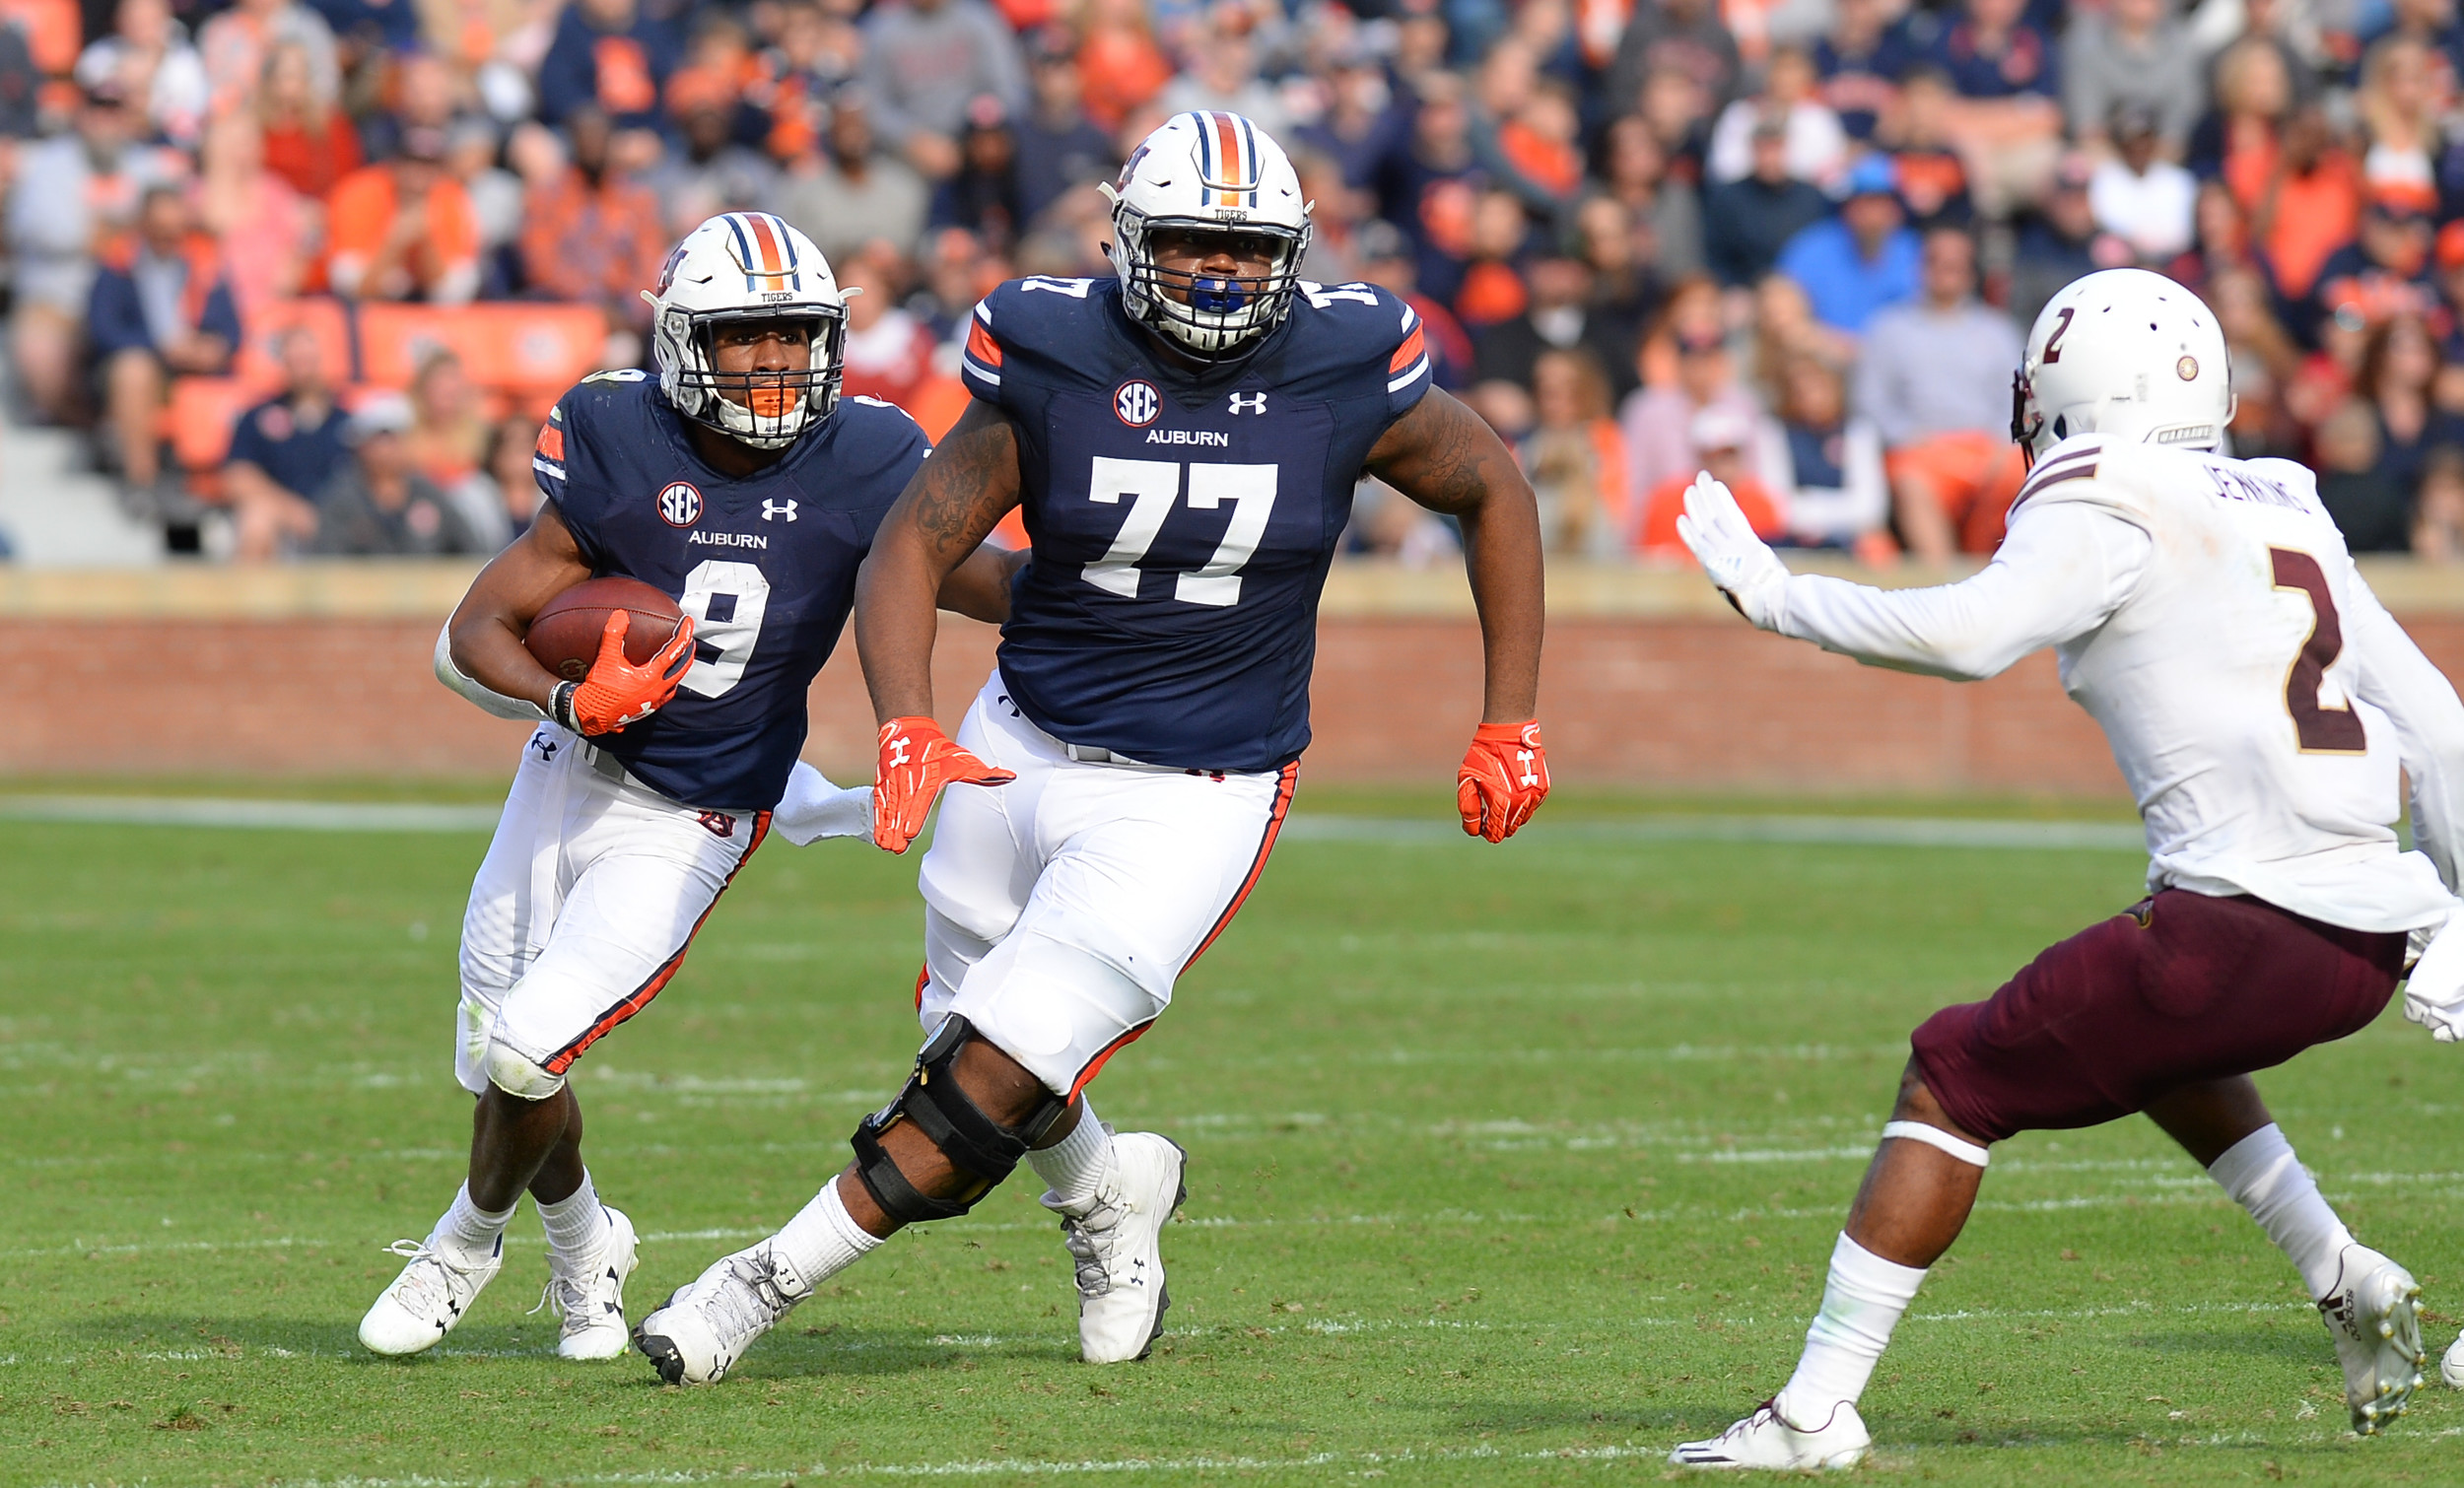 Auburn Tigers running back Kam Martin (9) runs behind  offensive lineman Marquel Harrell (77) during the second half of Saturday's game, at Jordan-Hare Stadium.